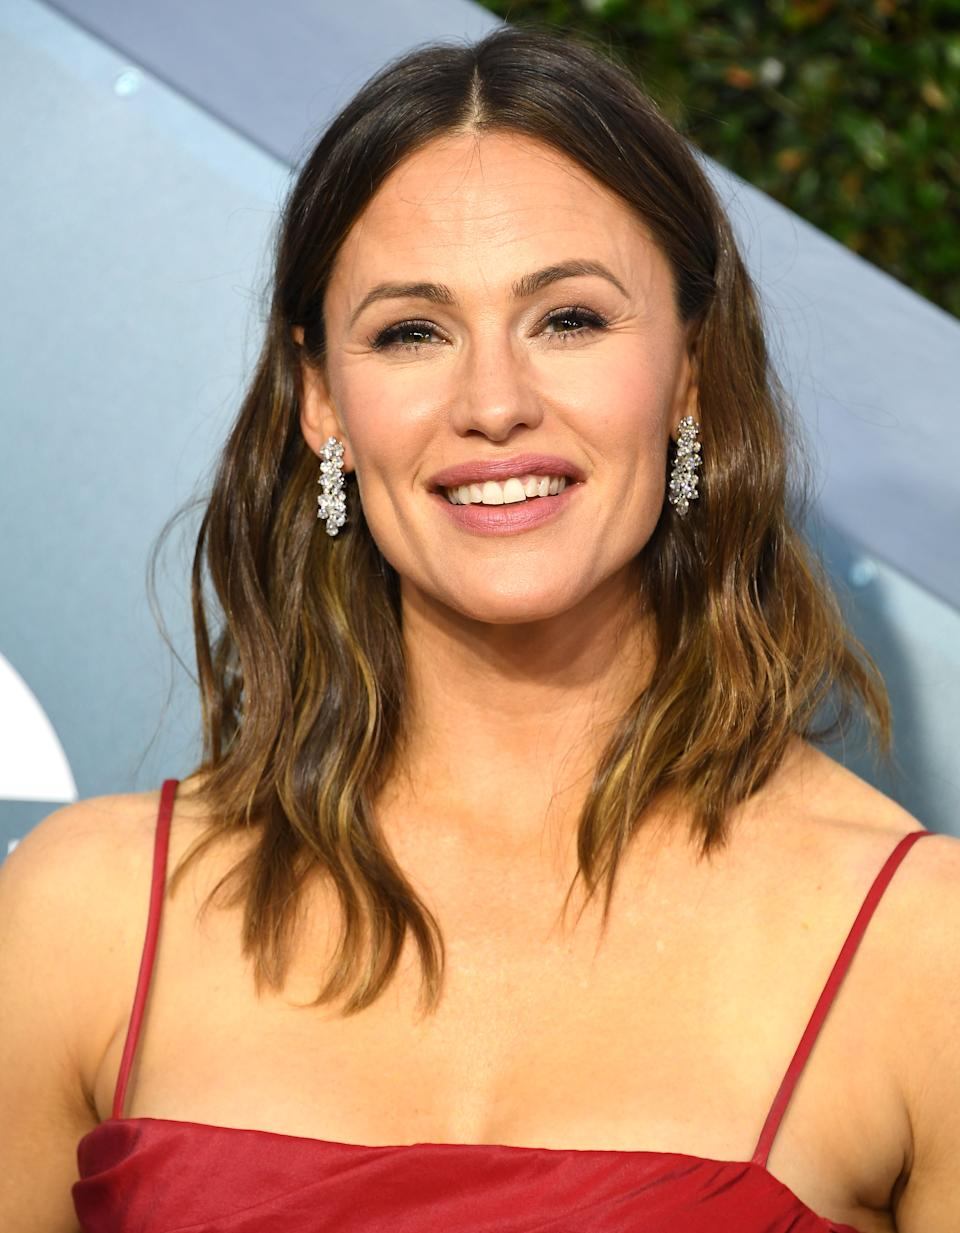 Jennifer Garner arrives at the 26th Annual Screen Actors Guild Awards at The Shrine Auditorium on January 19, 2020 in Los Angeles, California. (Photo by Steve Granitz/WireImage)